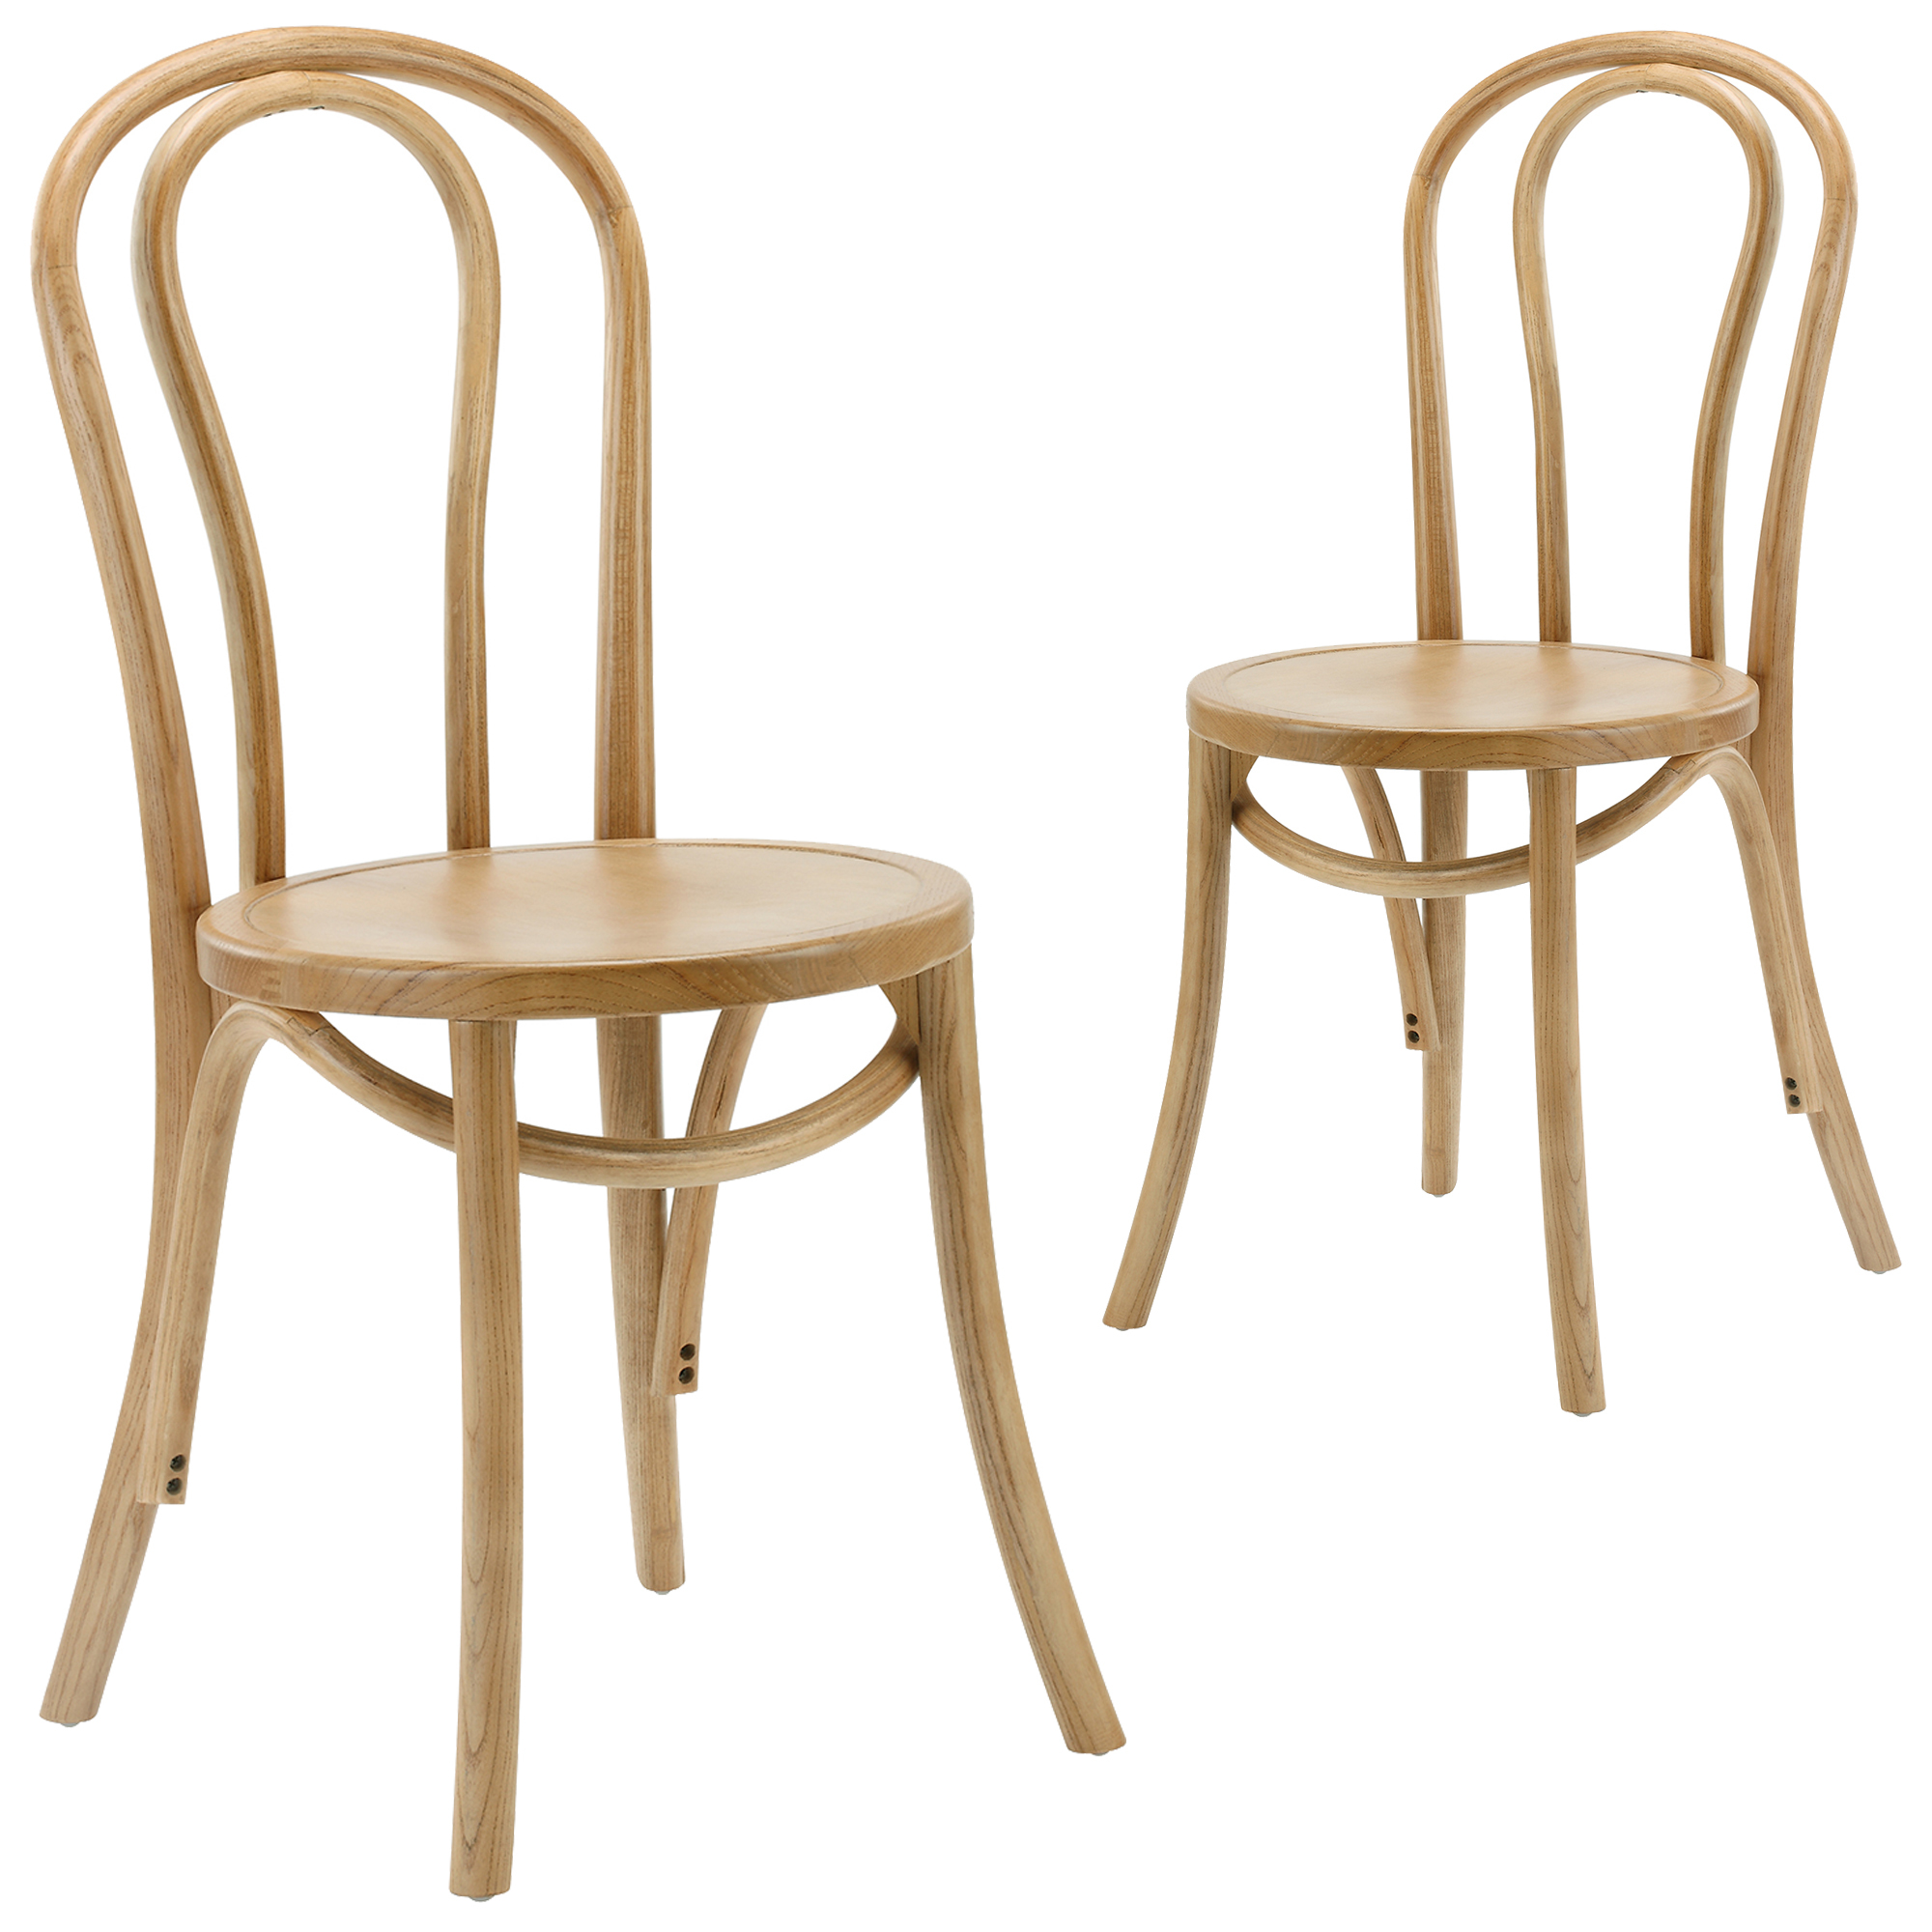 New set of 2 thonet replica bentwood chairs milan direct for Thonet replica chair